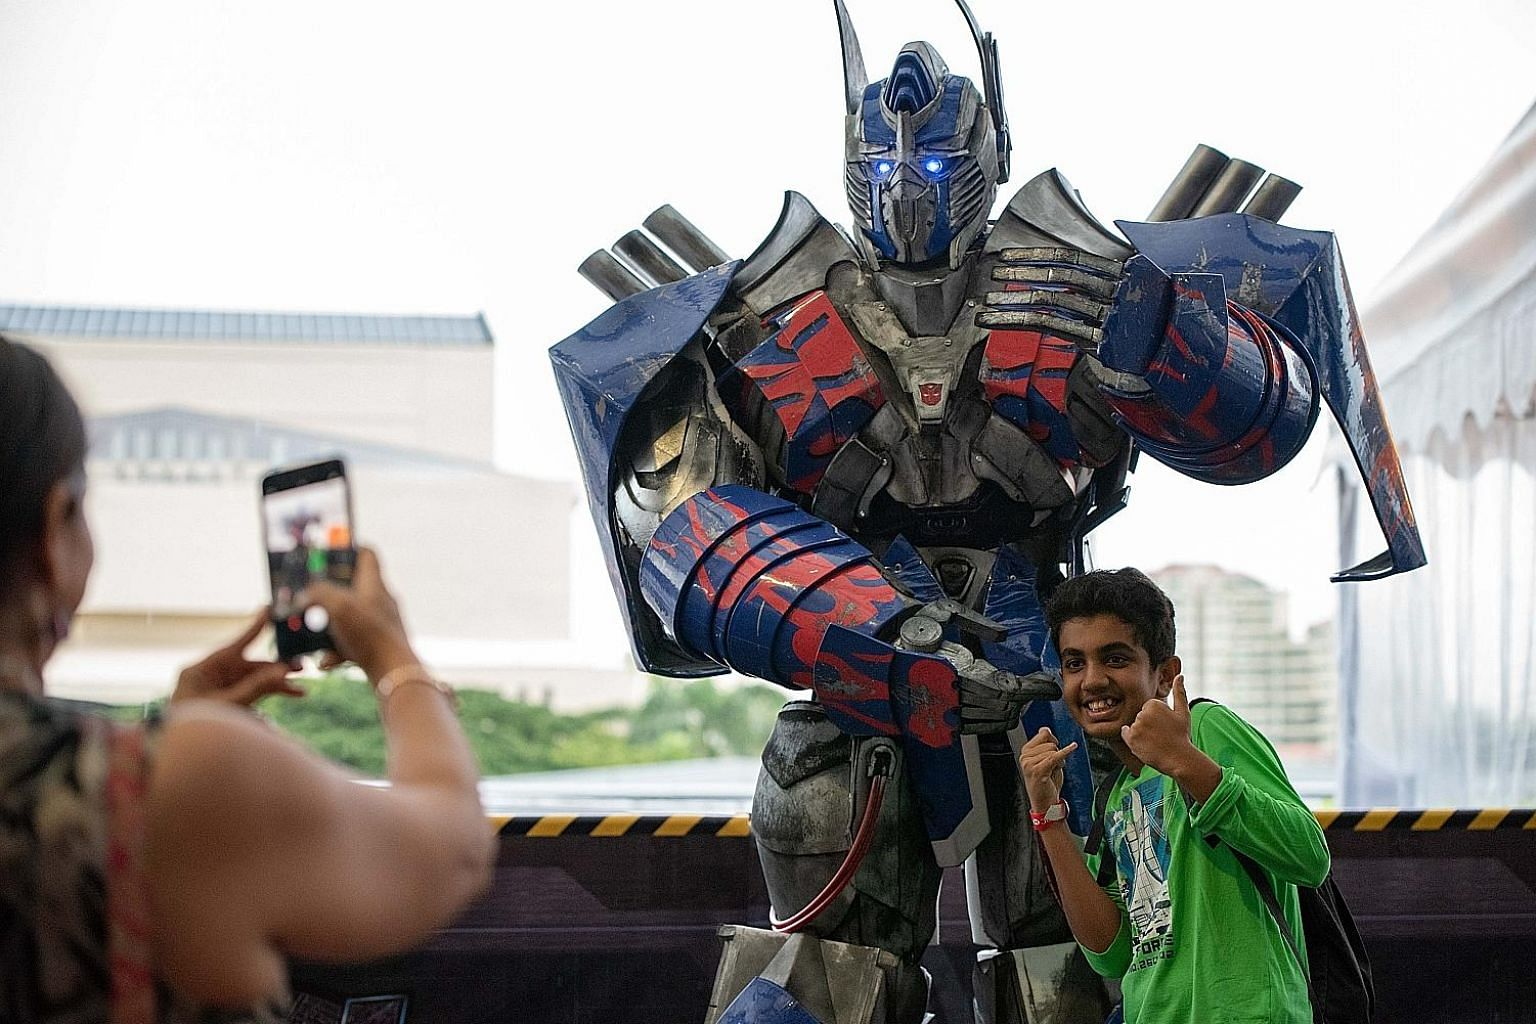 Ready to roll out! Catch The Transformers and other Hasbro stars at the HSBC Singapore Rugby 7s this weekend at the Singapore Sports Hub. The tournament is not only ruck and maul on the pitch but fun and games off it as well.